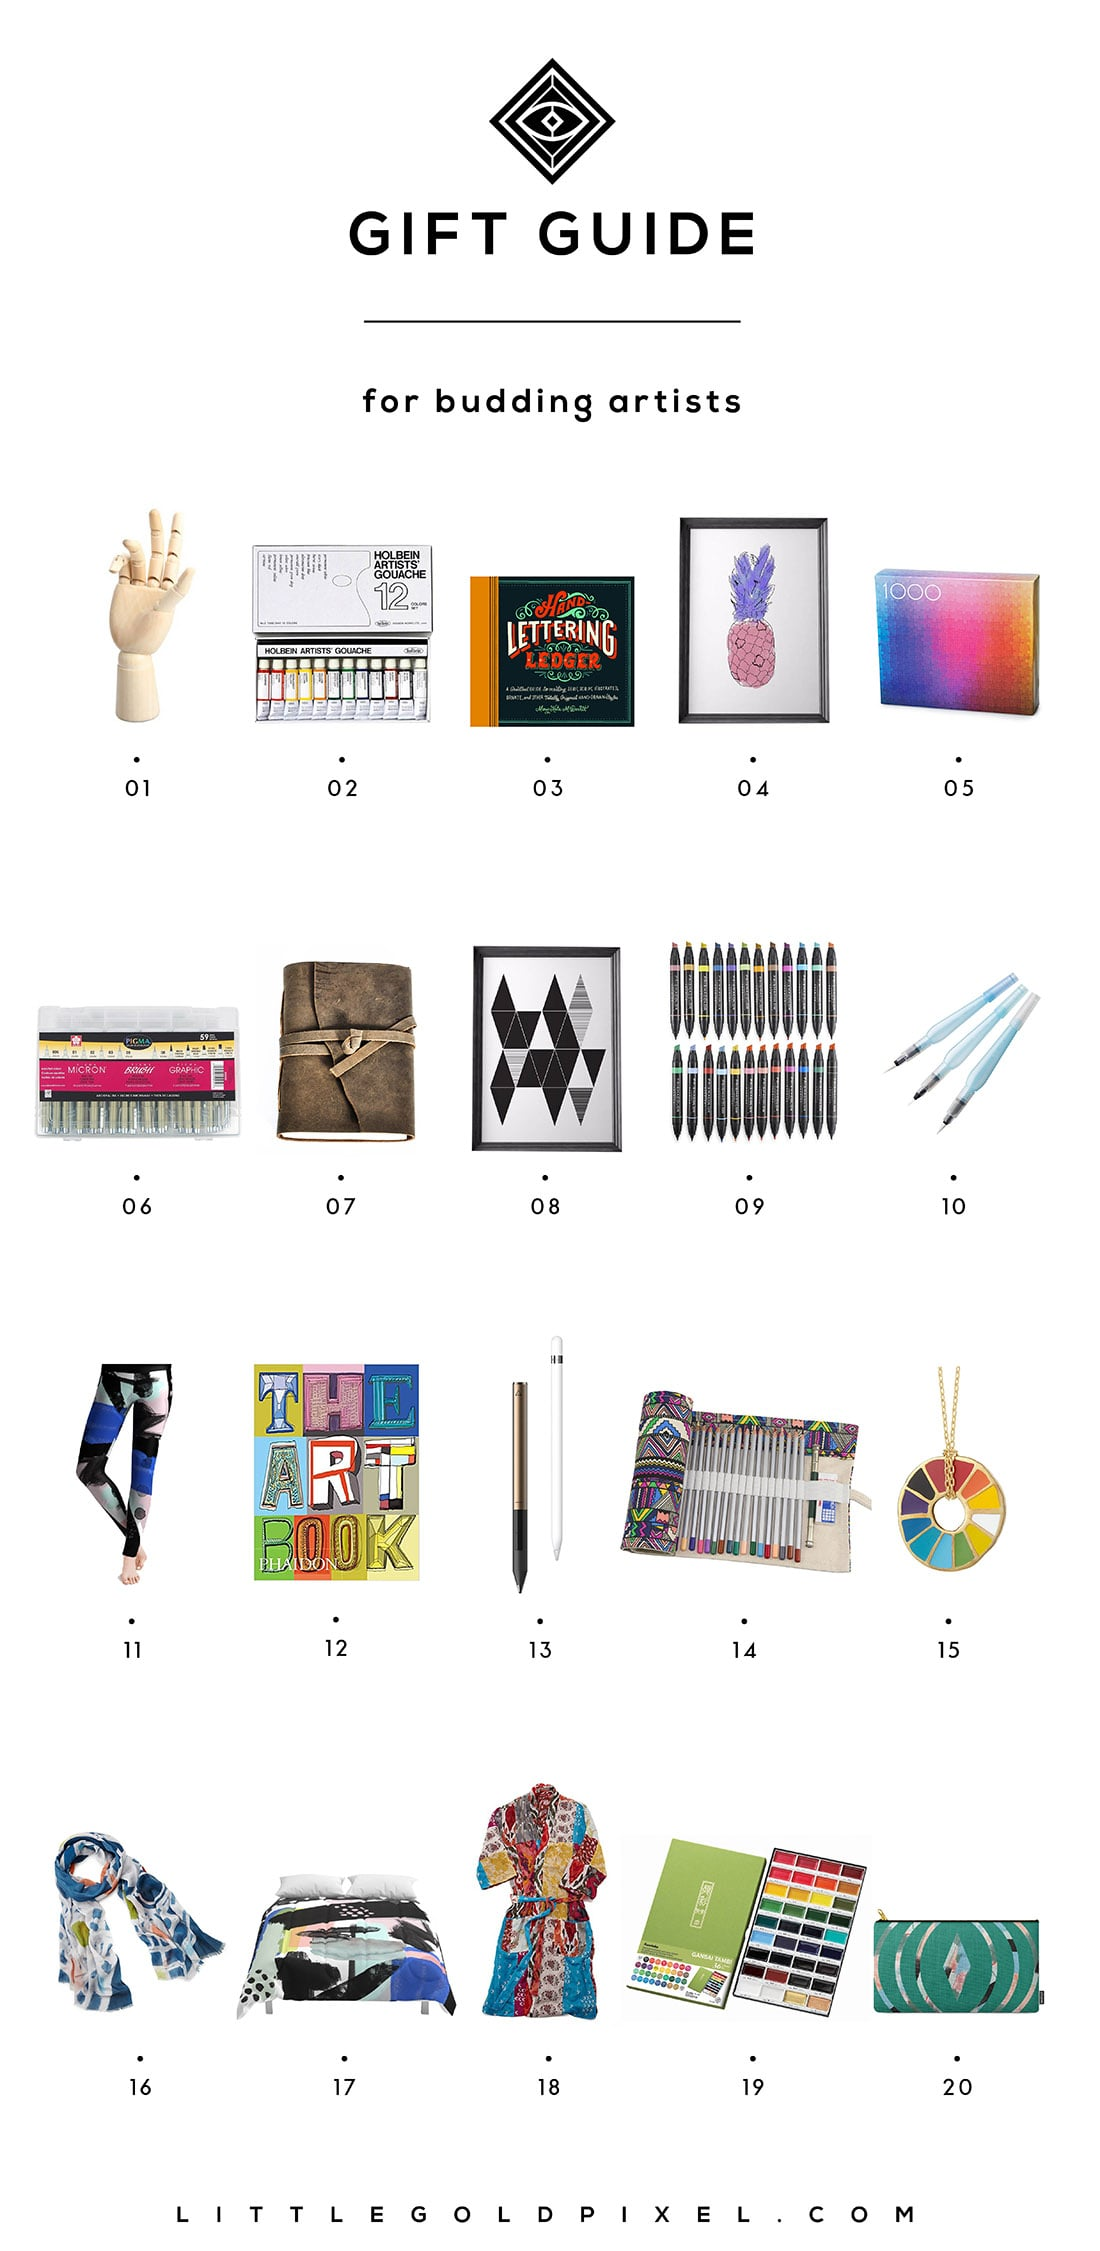 Little Gold Pixel's Artist Gift Guide: Here are 20 gifts perfect for the budding Picassos in your life. Grab one for yourself while you're at it!